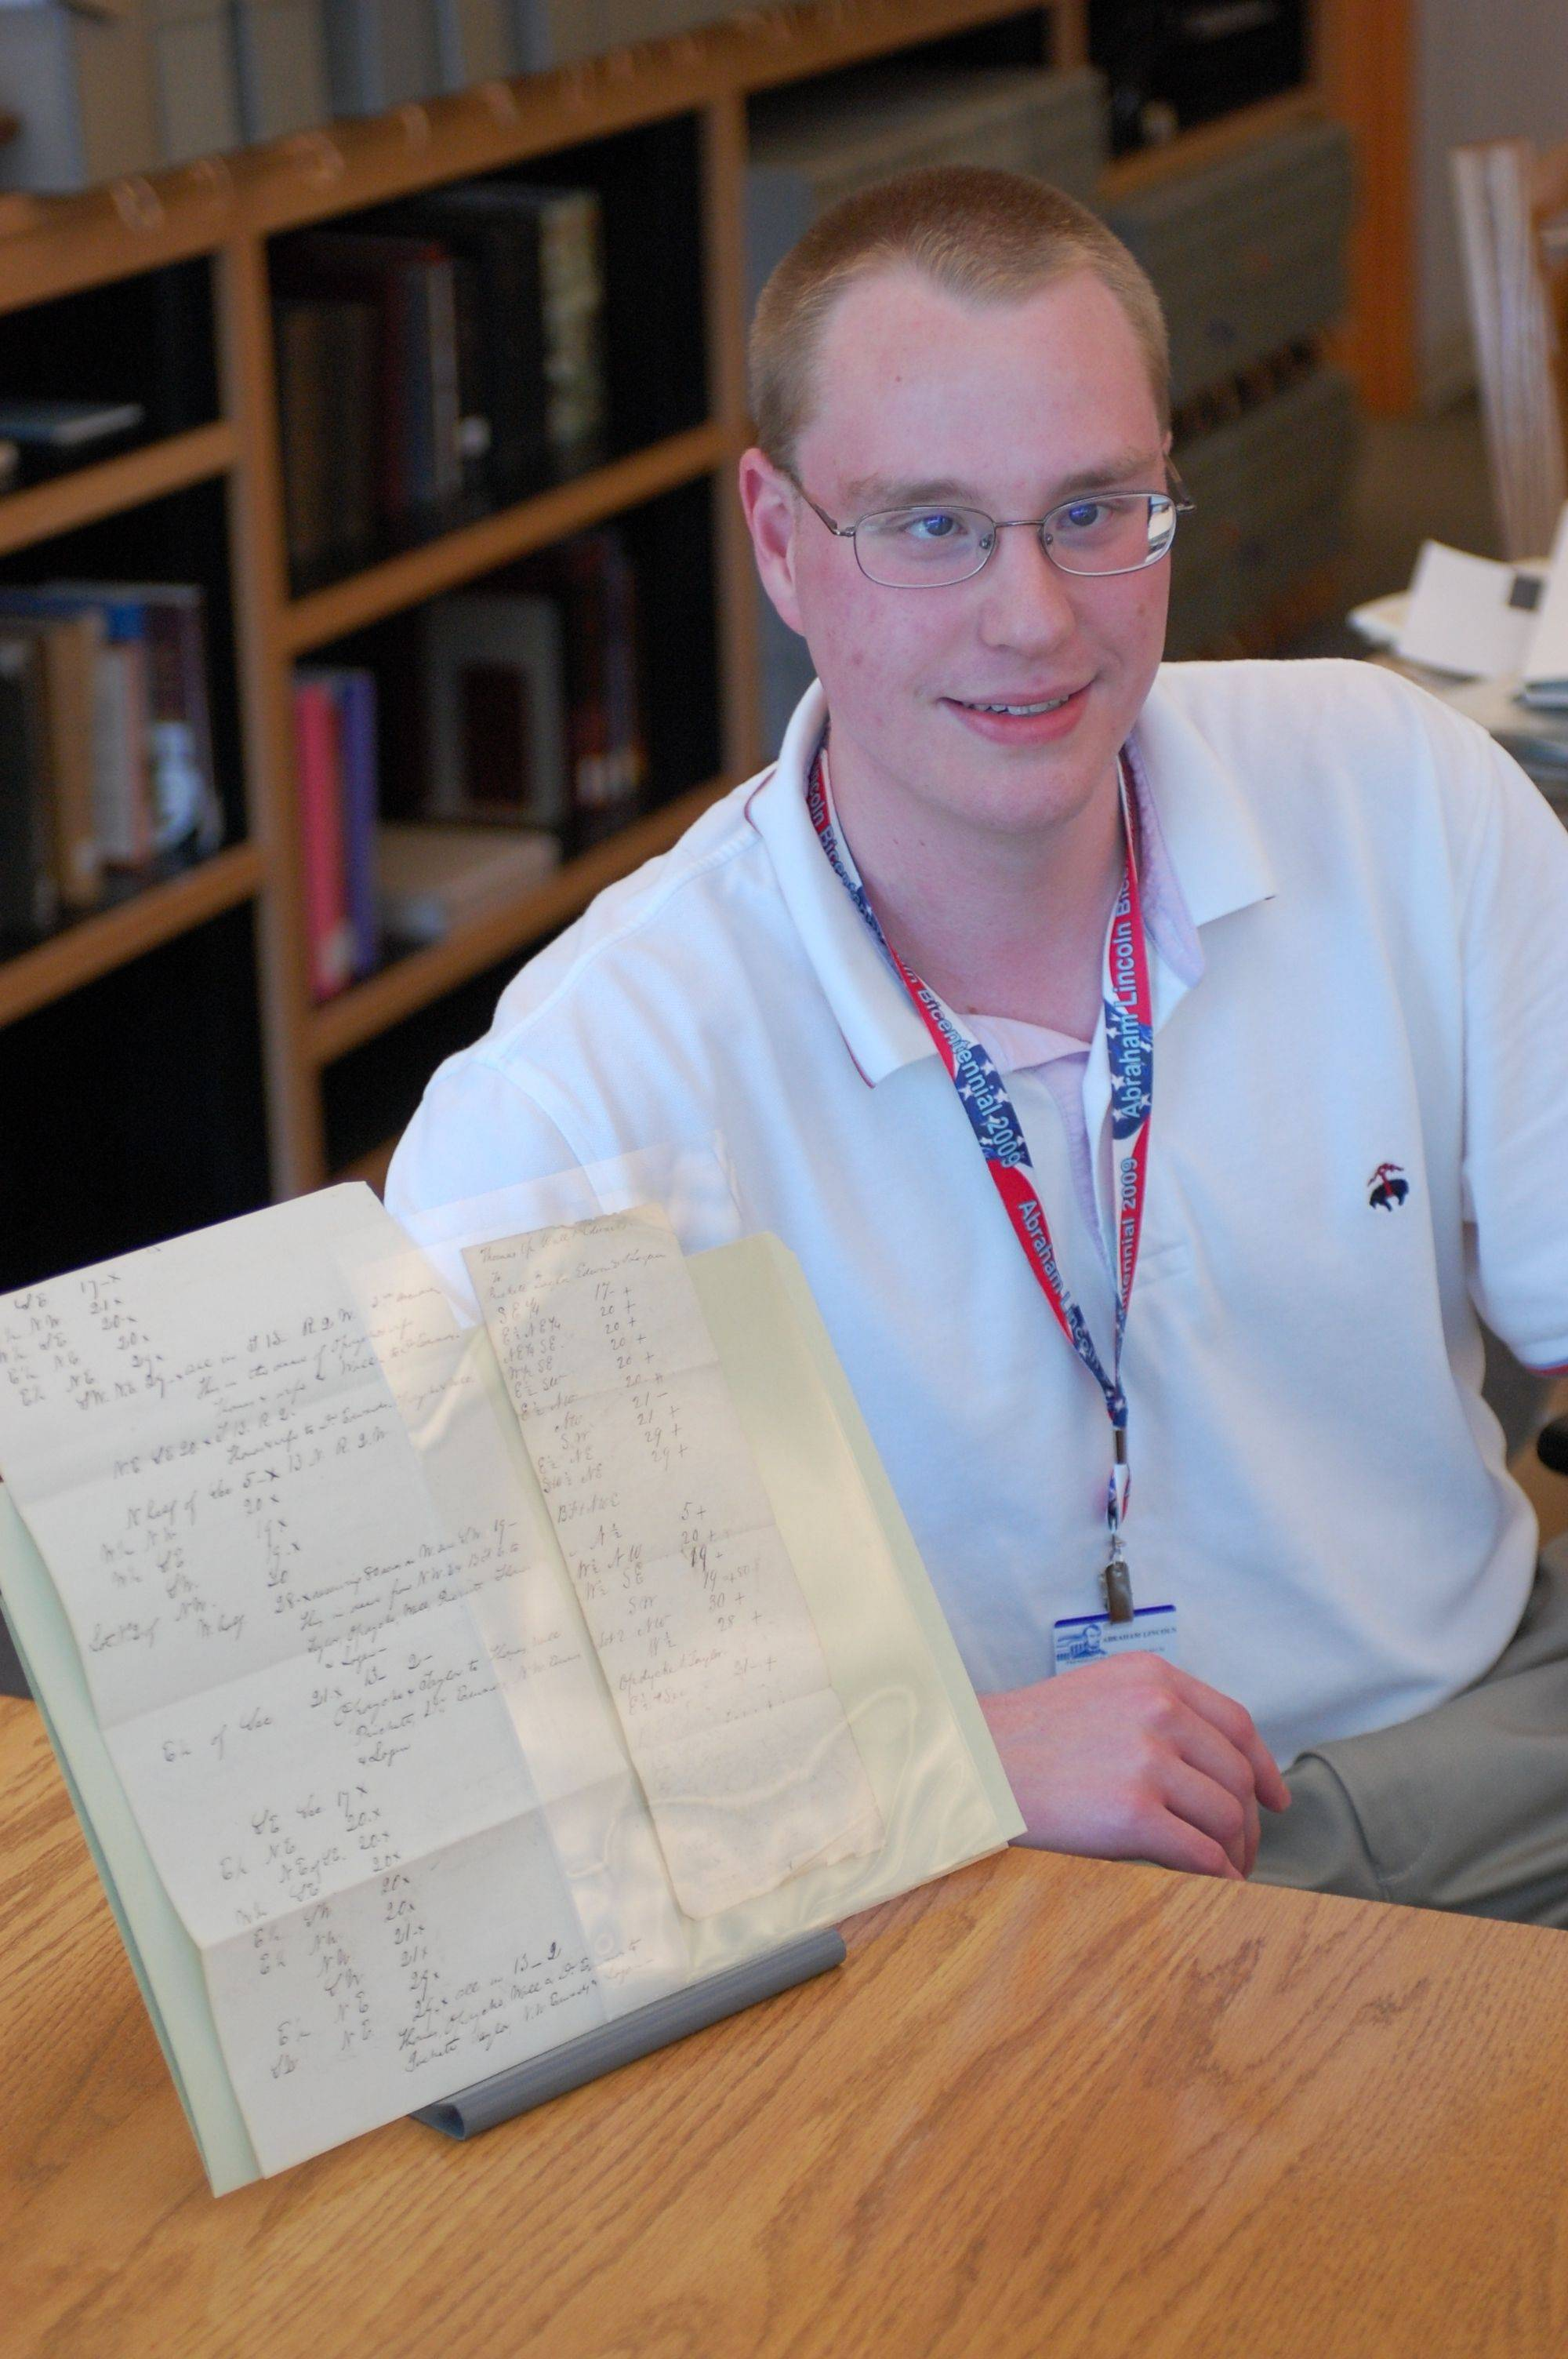 David Spriegel of Gurnee was in his first weeks as an intern for the Abraham Lincoln Presidential Library and Museum in Springfield when he discovered two previously unknown documents handwritten by Lincoln.